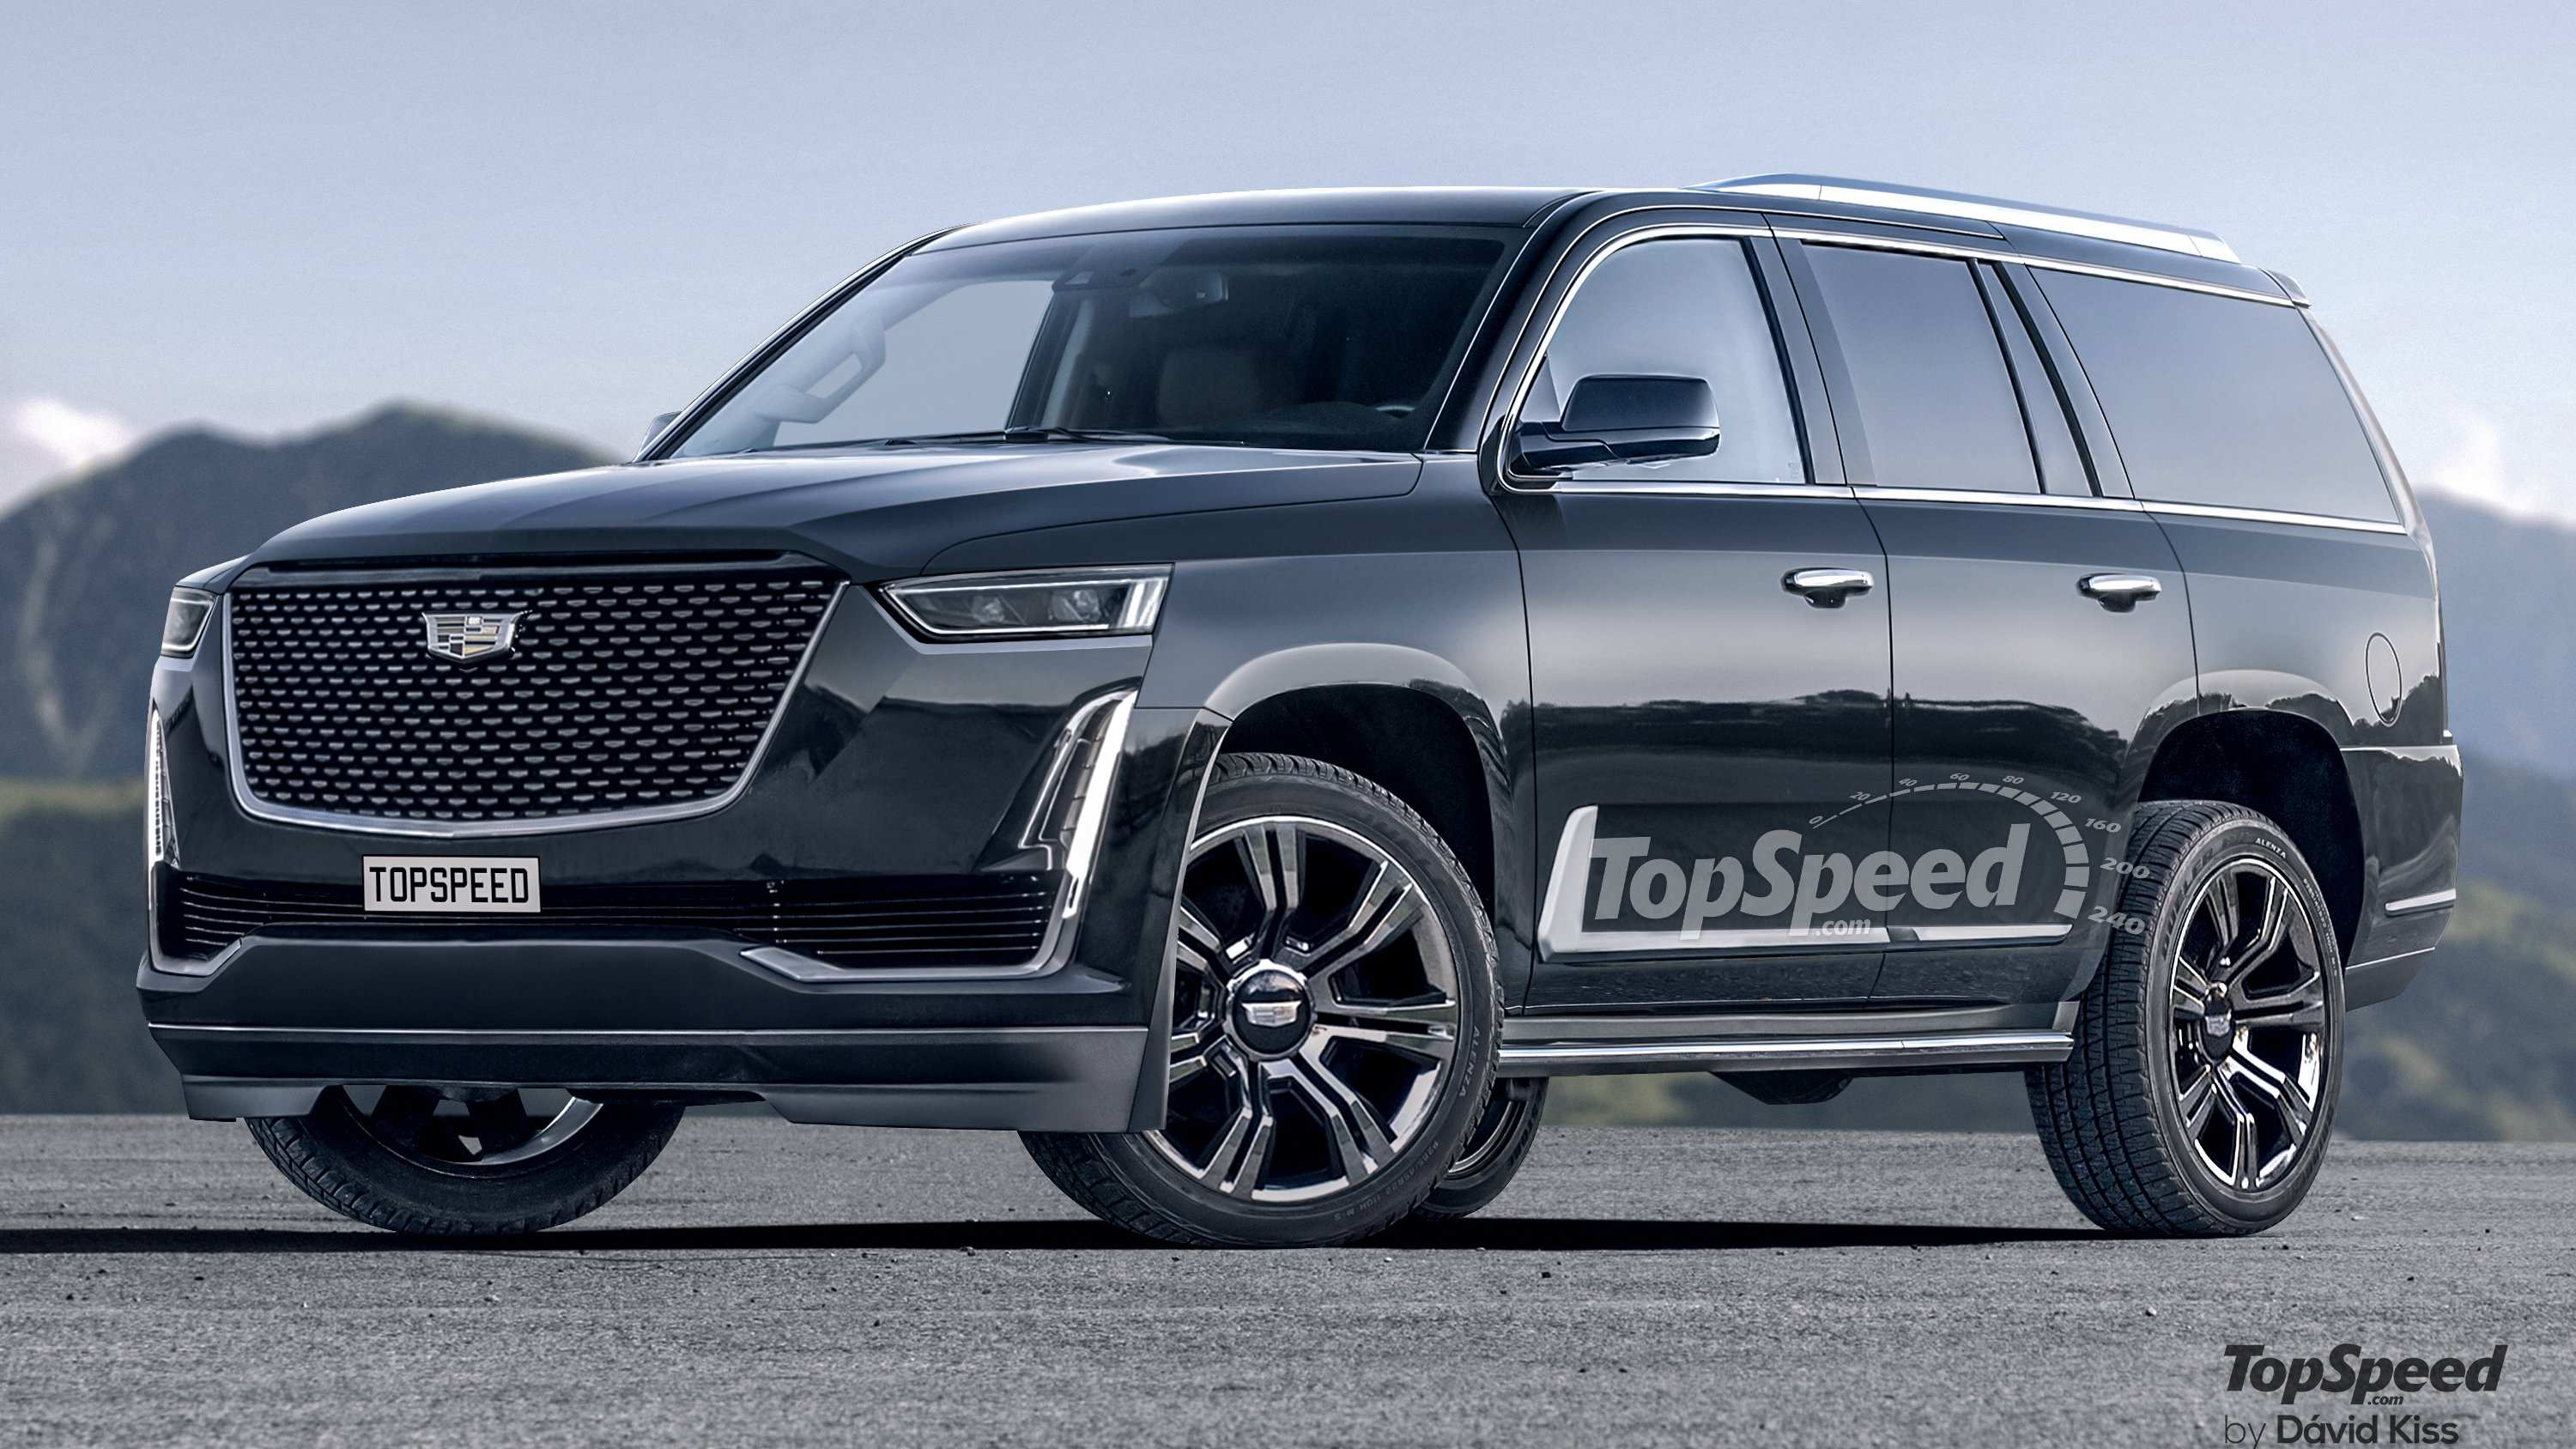 54 Concept of When Will The 2020 Cadillac Escalade Be Released Specs with When Will The 2020 Cadillac Escalade Be Released